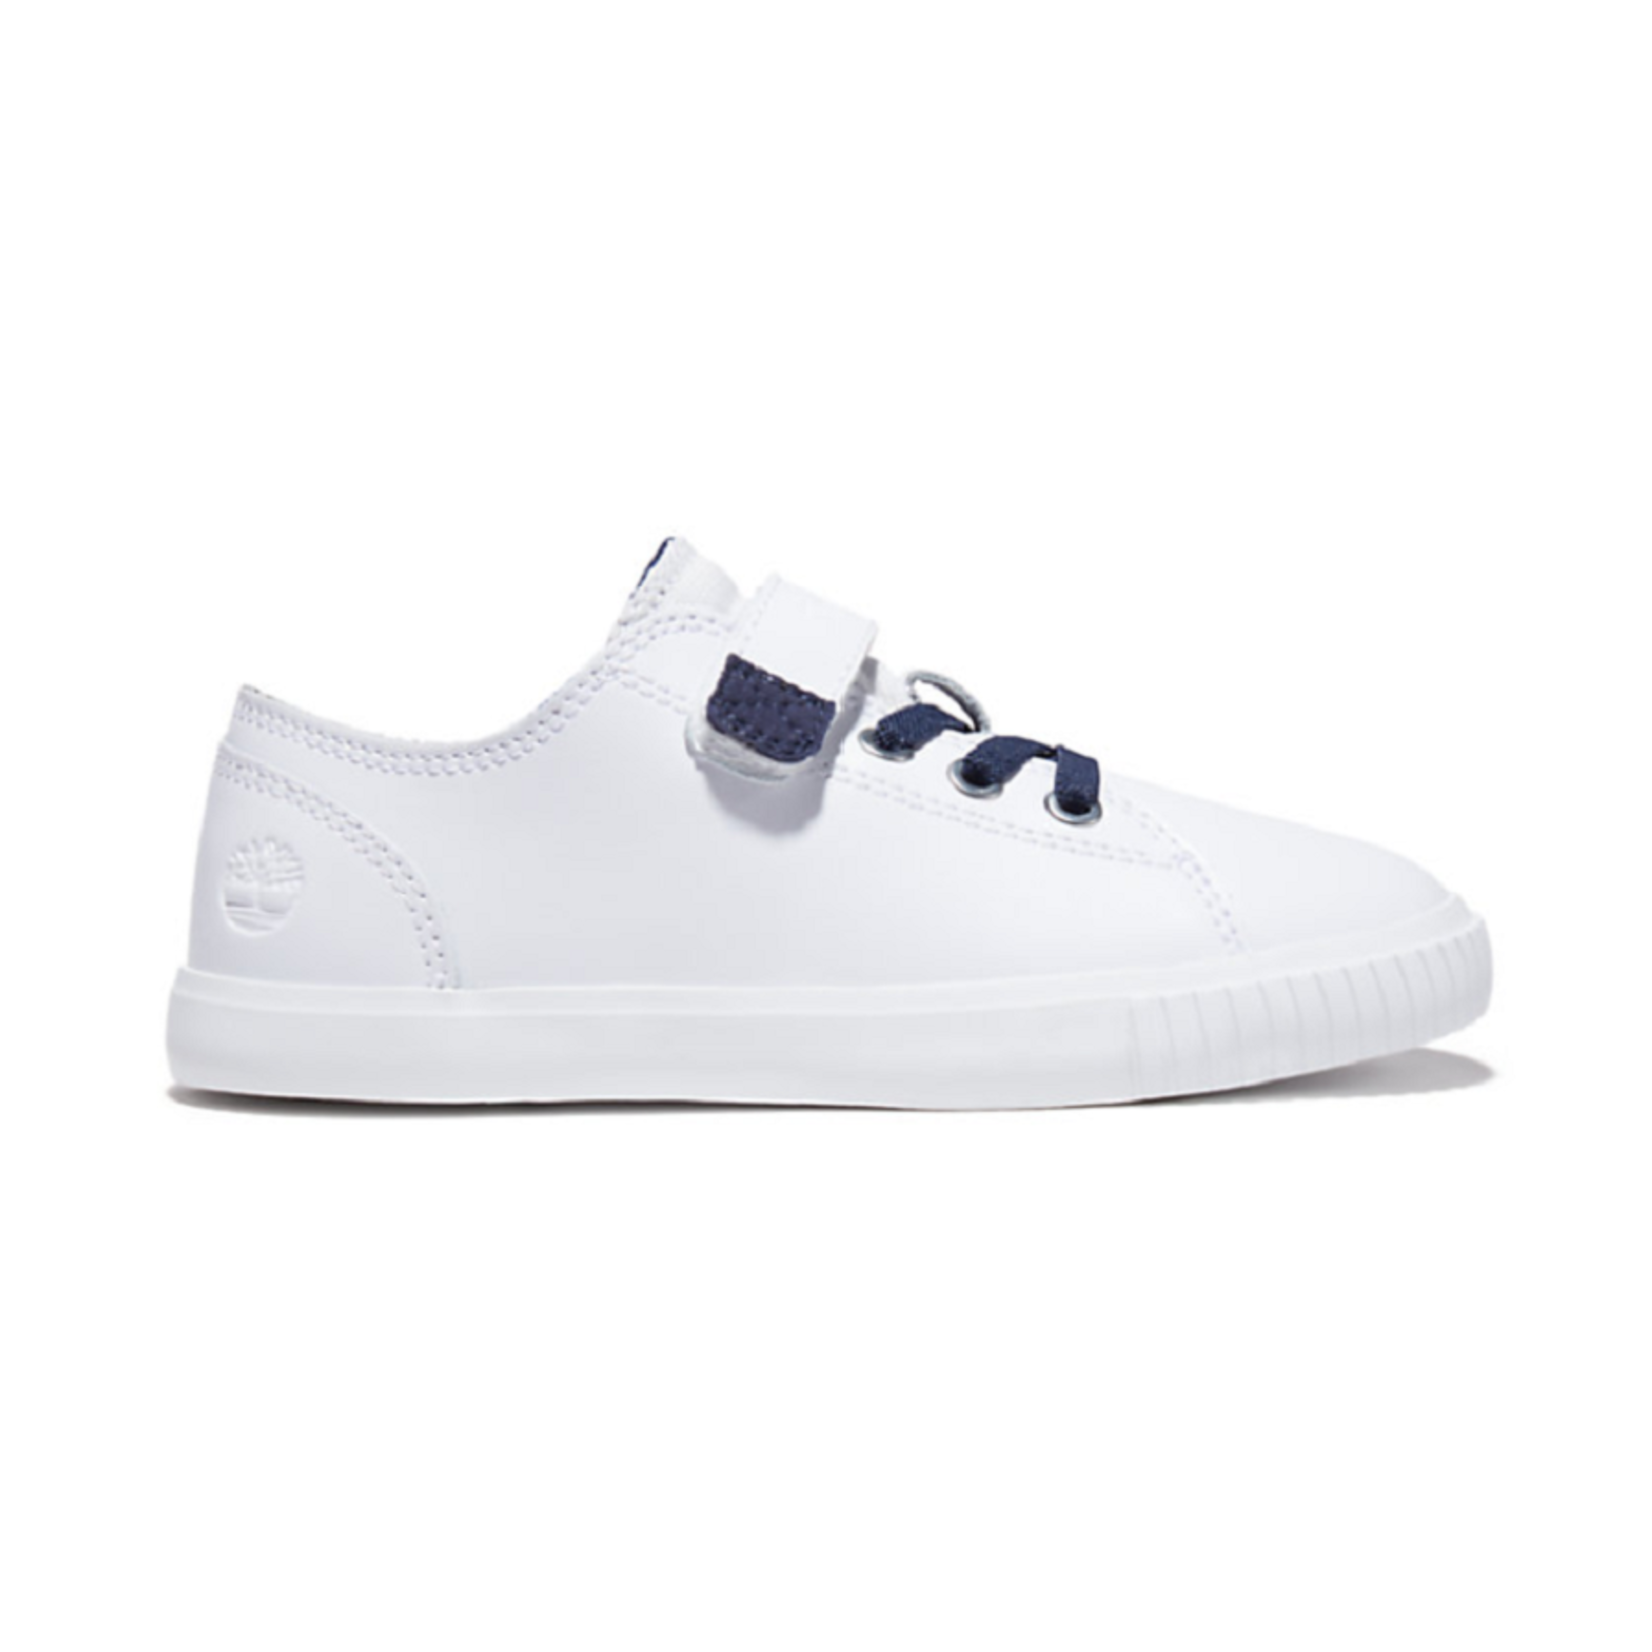 Timberland NEWPORT BAY SNEAKER FOR YOUTH IN WHITE/NAVY